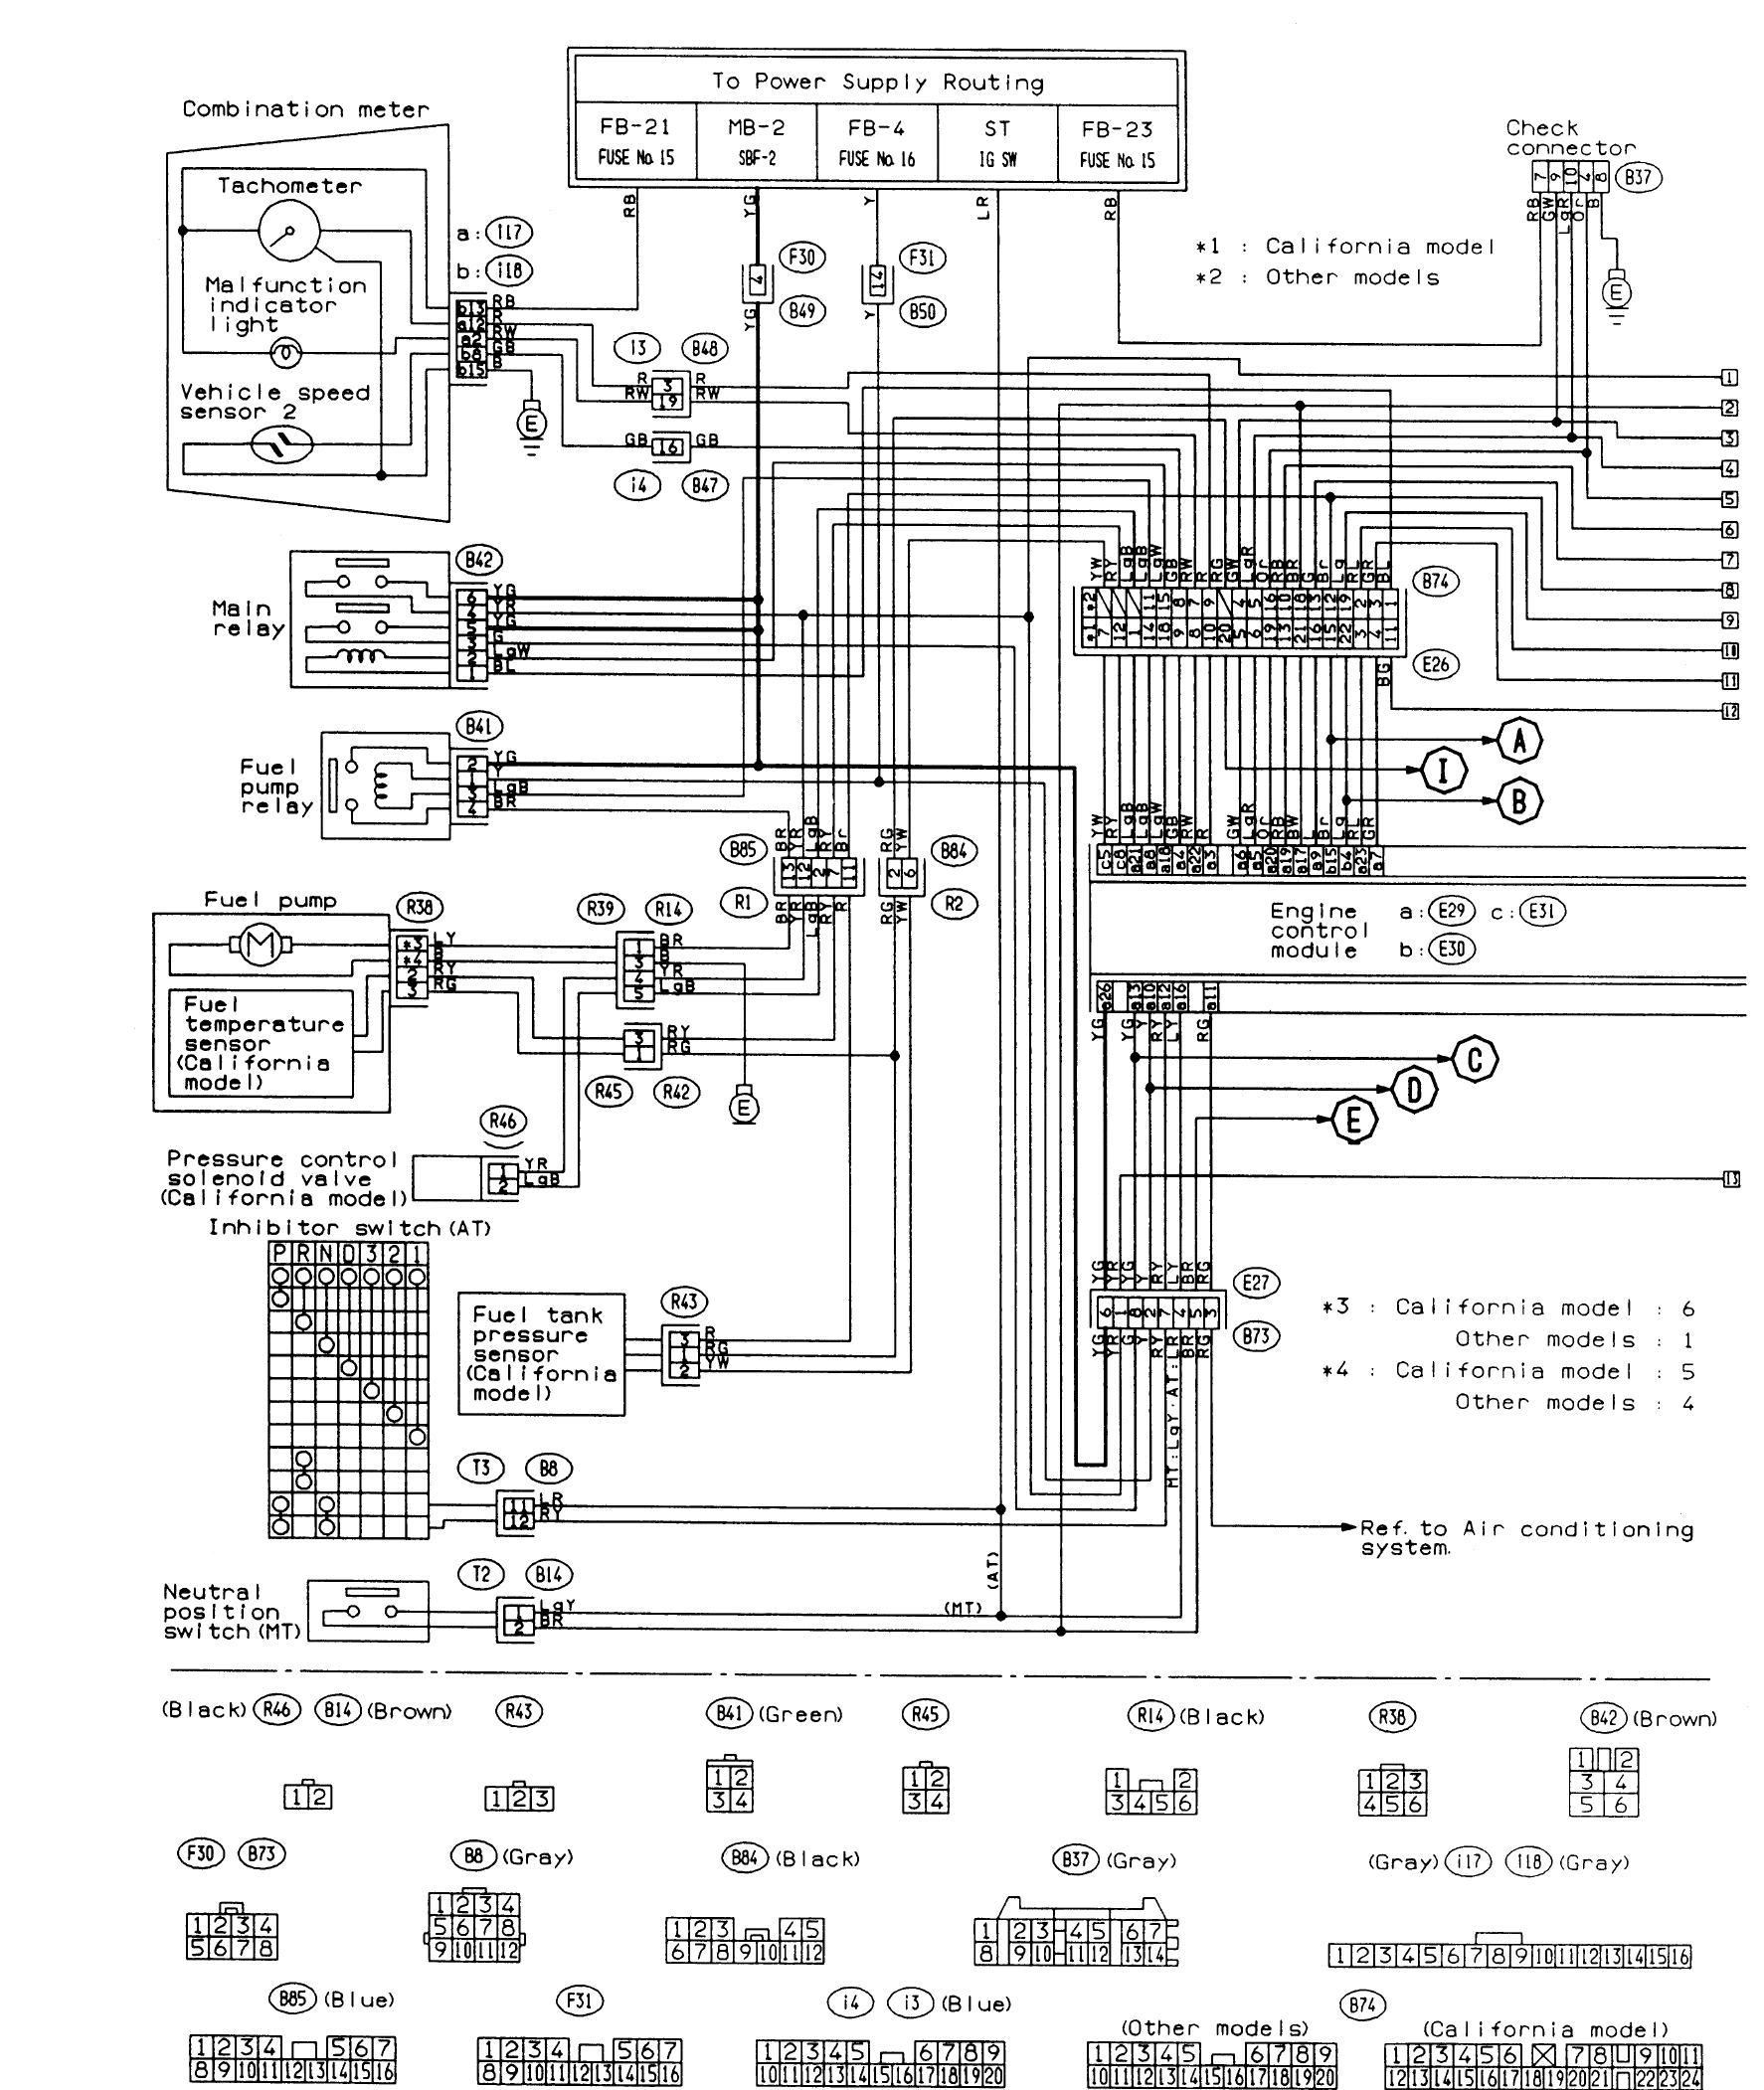 subaru ecu wiring diagram FUSlrCX wiring diagram for 2013 subaru outback radios readingrat net 2000 subaru outback wiring diagram at fashall.co